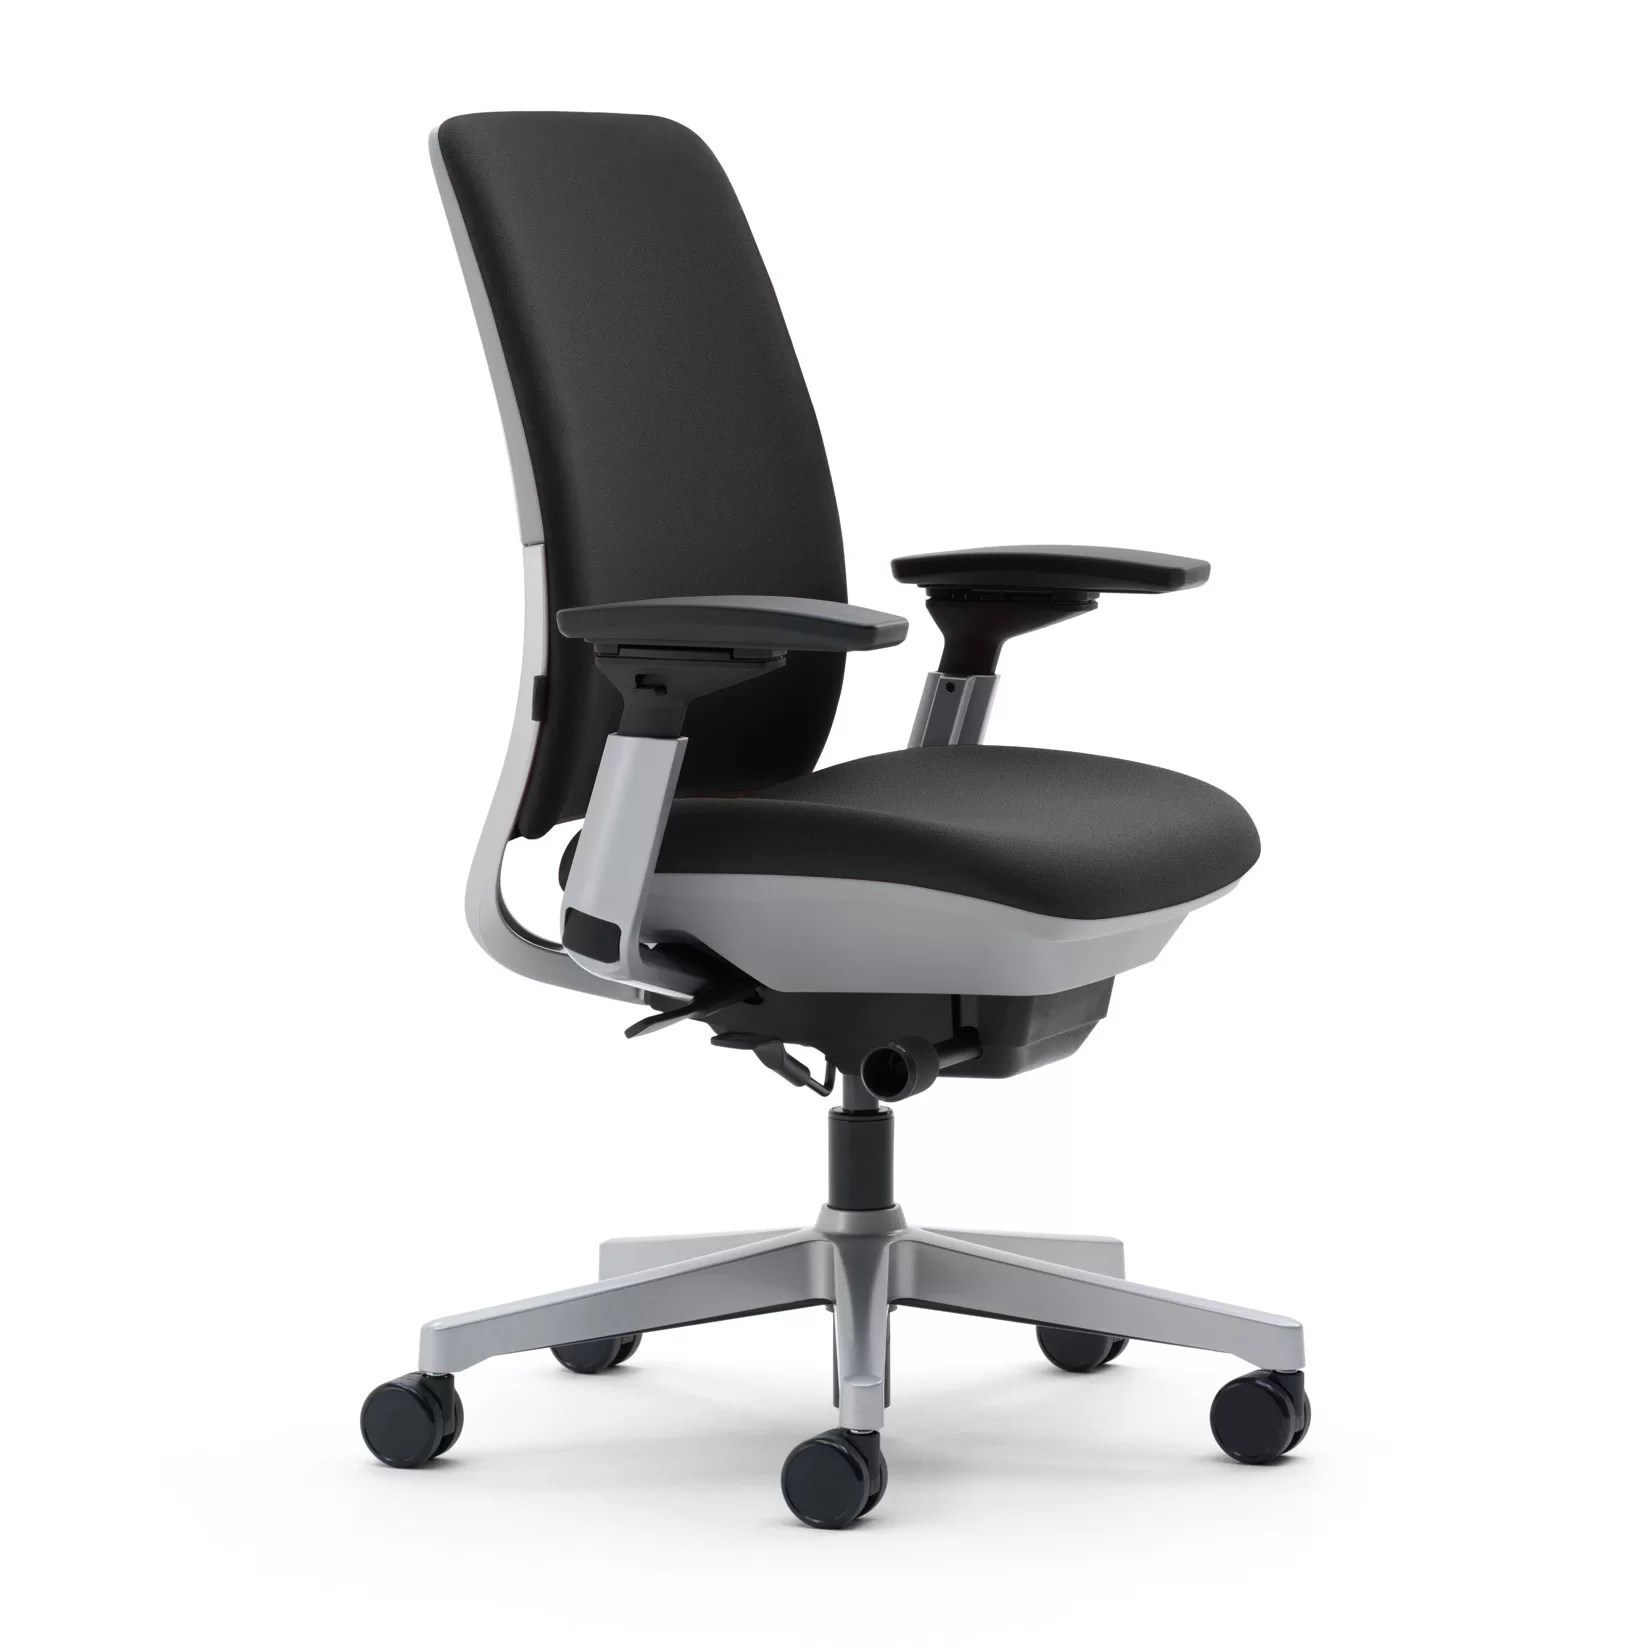 Steelcase Chair Steelcase Amia Mid Back Upholstered Work Chair And Reviews